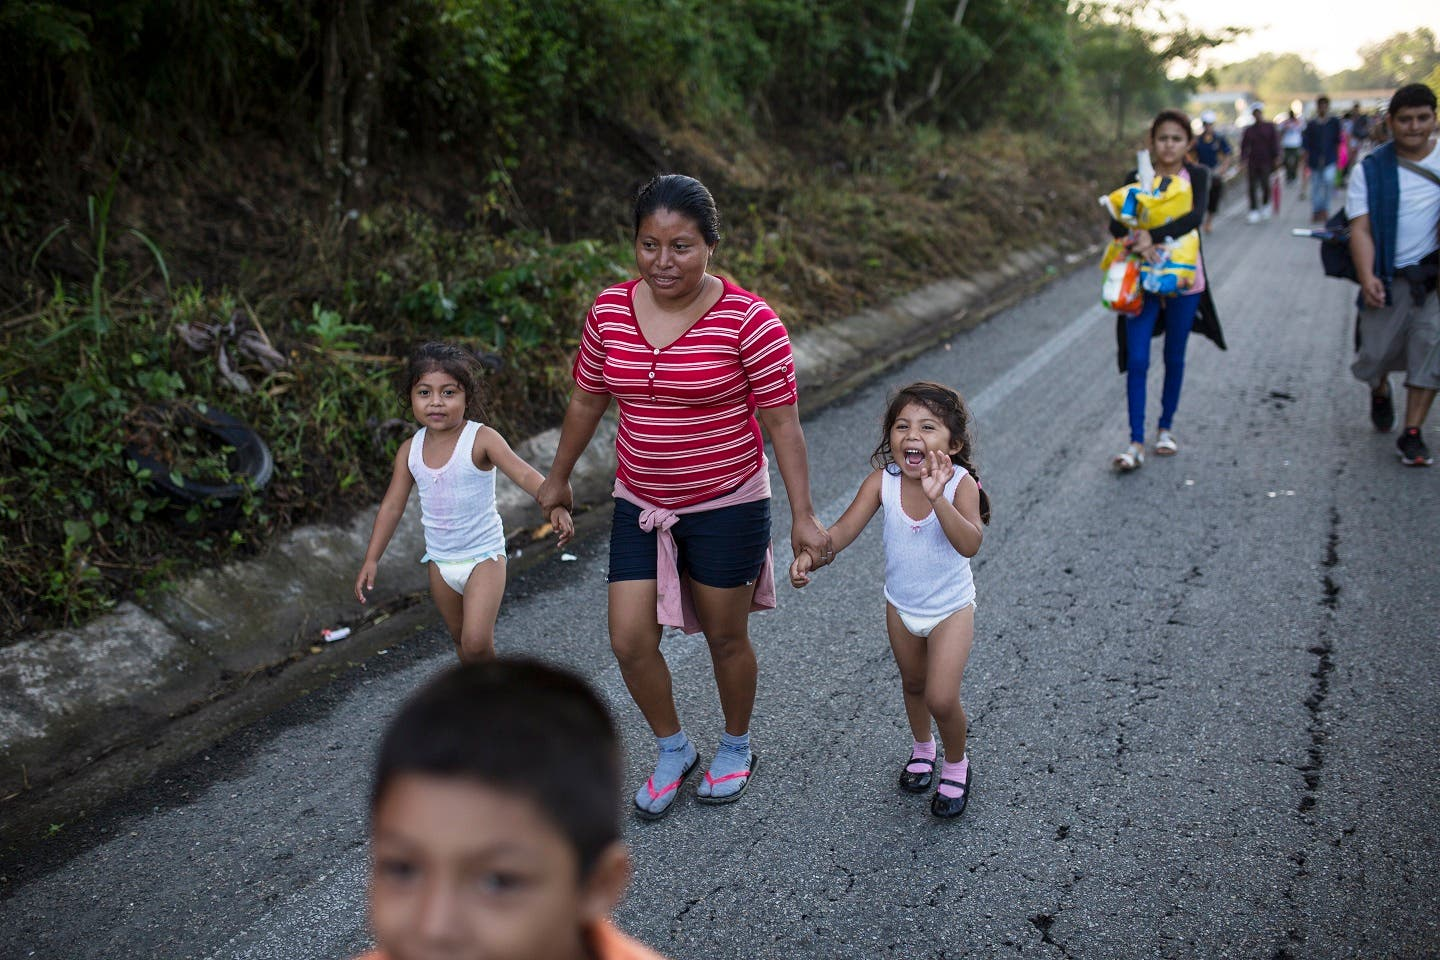 2. Silvia camina junto a sus hijas  Karen, 5, , and Beiyi, 4, with a caravan to the U.S., make their way to Mapastepec, Mexico, Wednesday, Oct. 24, 2018. Thousands of Central American migrants renewed their hoped-for march to the United States on Wednesday, setting out before dawn with plans to travel another 45 miles (75 kilometers) of the more than 1,000 miles that still lie before them. (AP Photo/Rodrigo Abd)